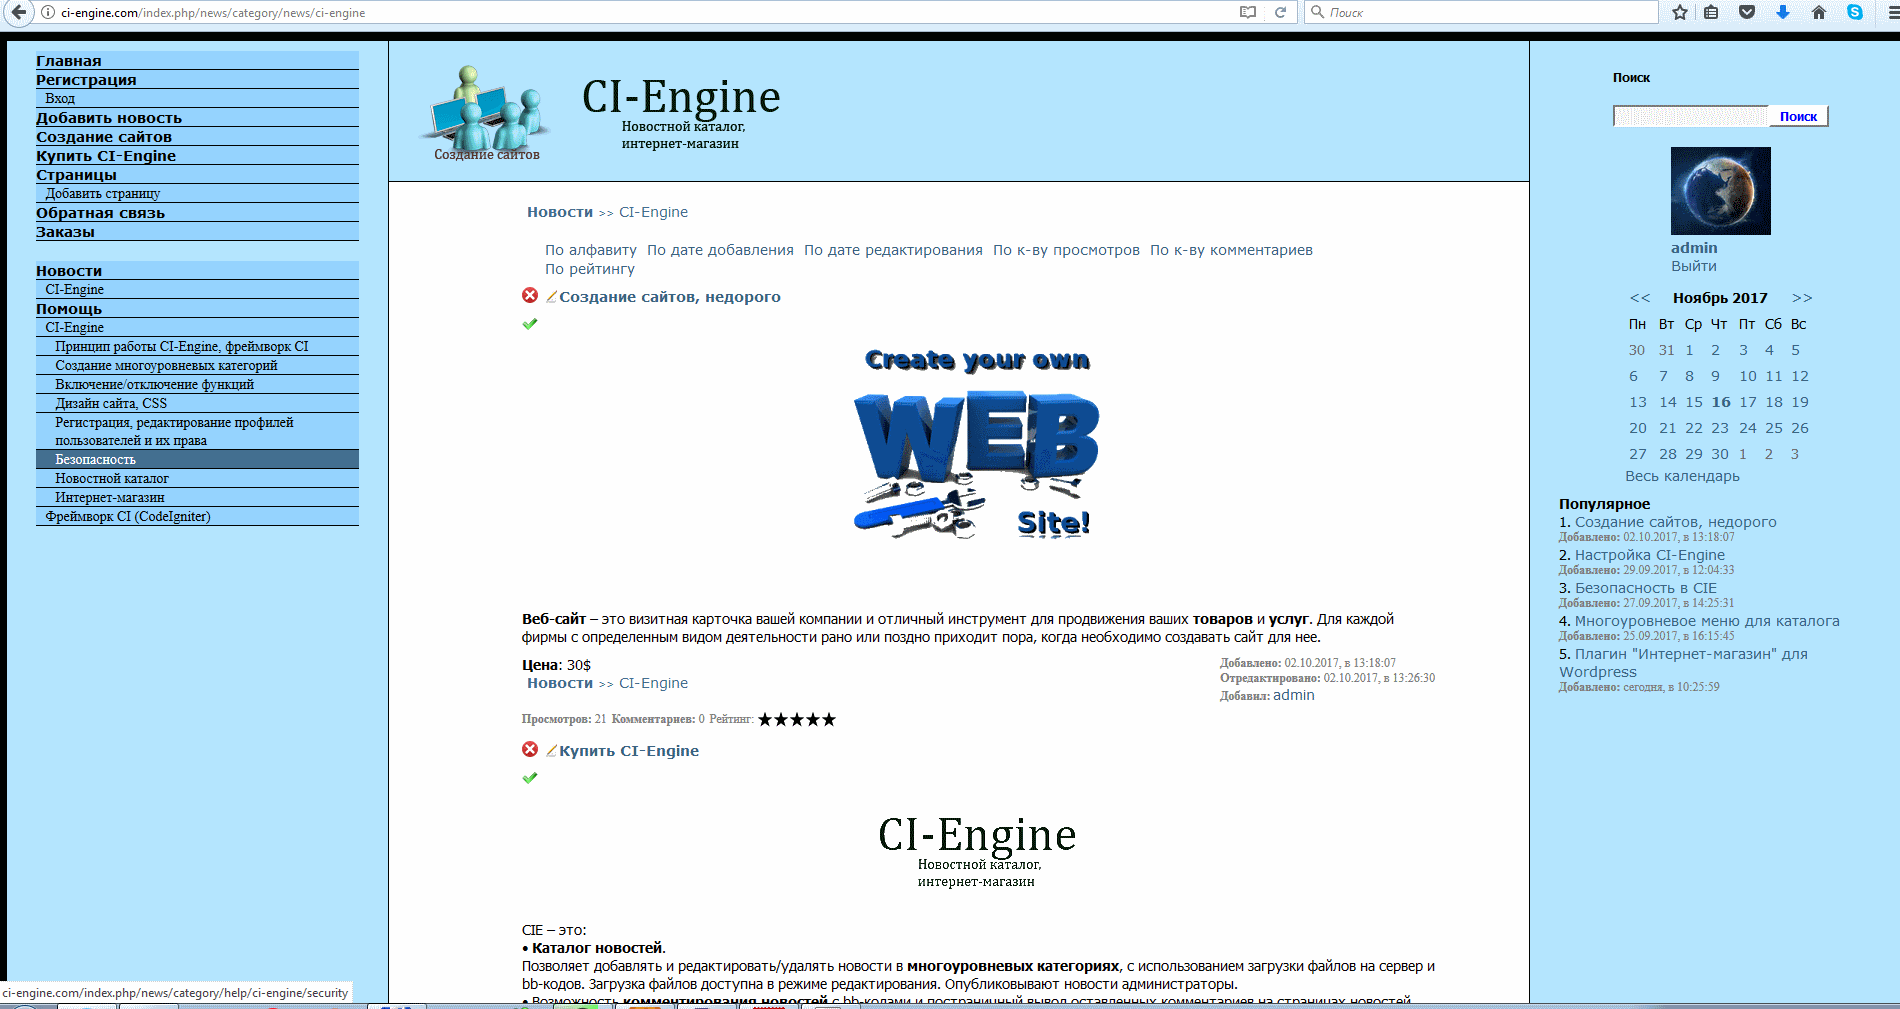 CI-Engine - news catalog and online store